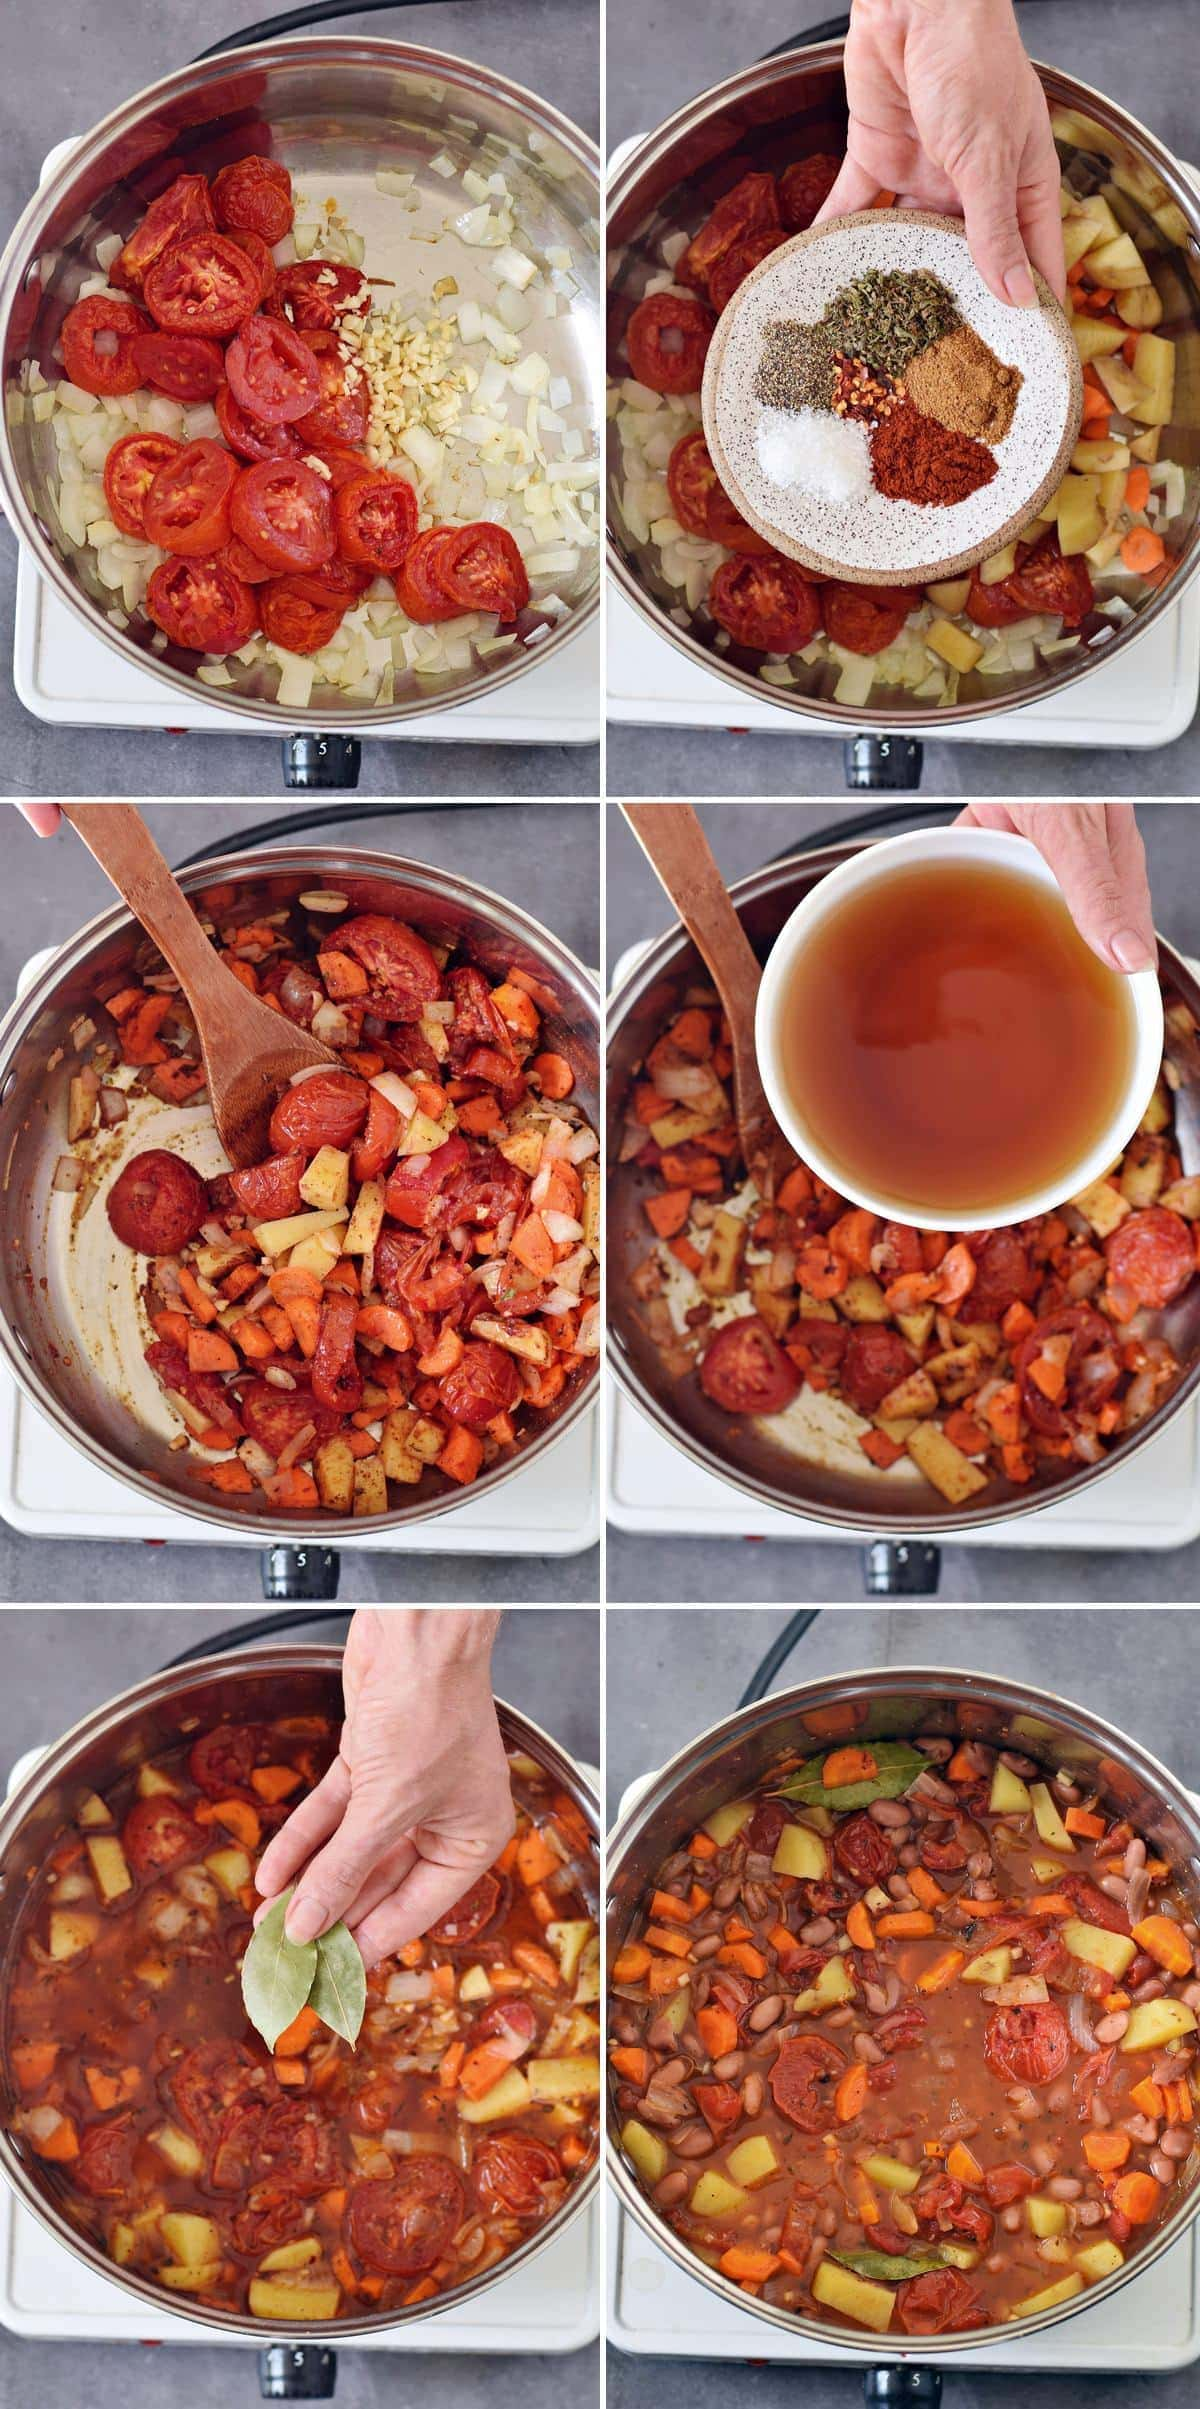 6 step-by-step photos showing how to make a stew with beans